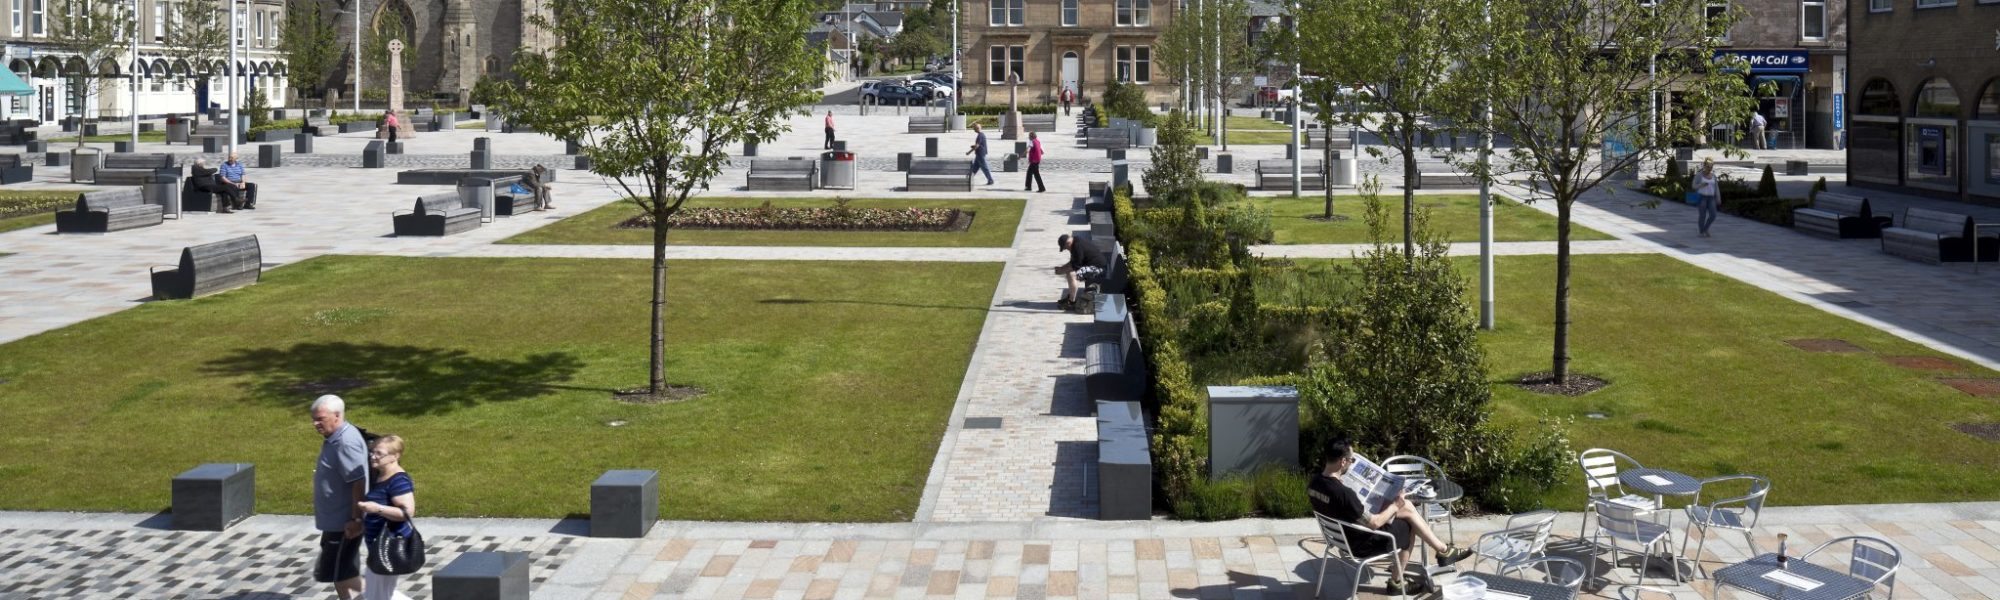 Helensburgh Town Centre